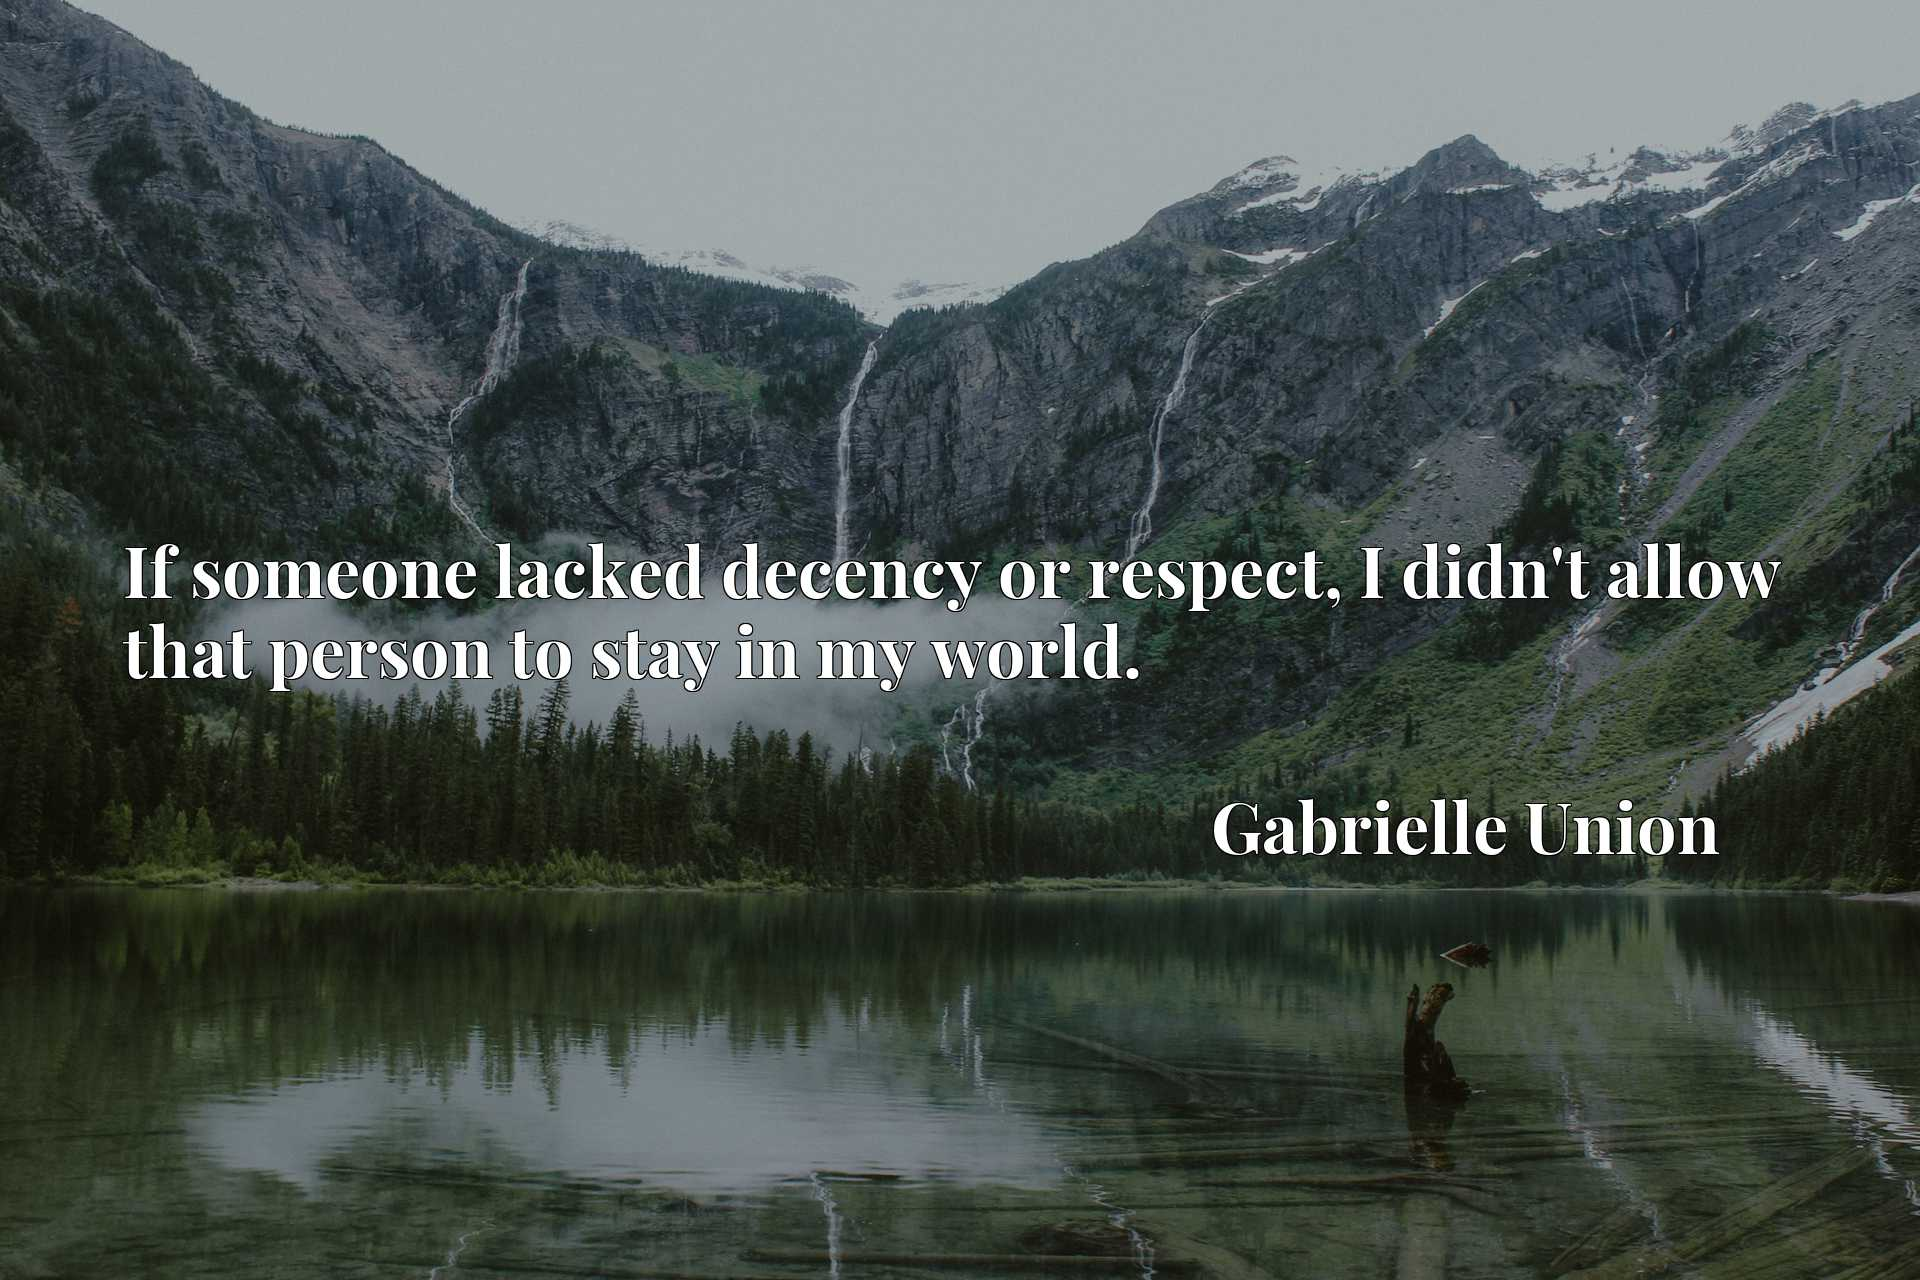 Quote Picture :If someone lacked decency or respect, I didn't allow that person to stay in my world.